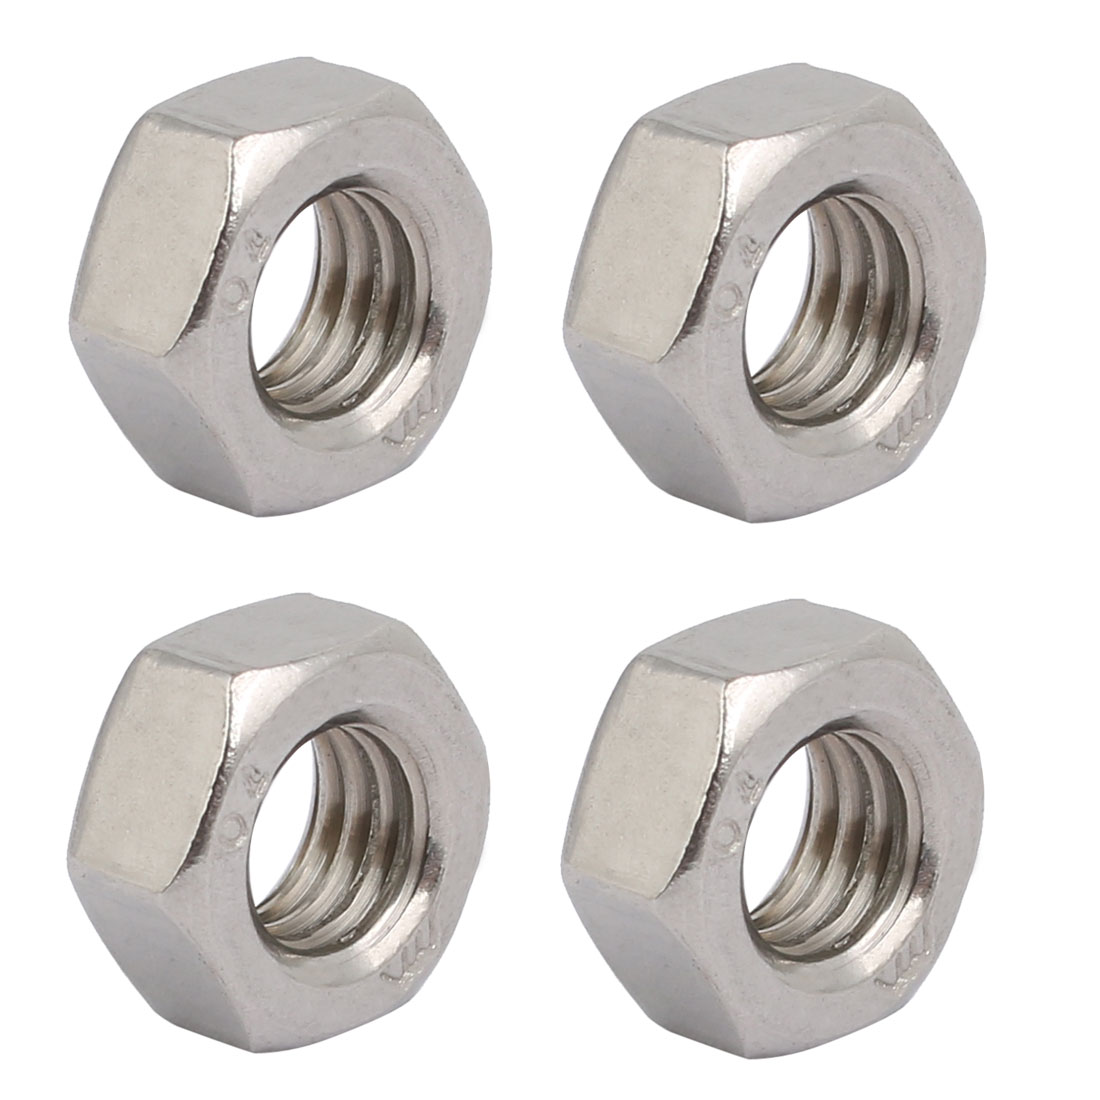 4pcs M8 x 1.25mm Pitch Metric Thread 304 Stainless Steel Left Hand Hex Nuts